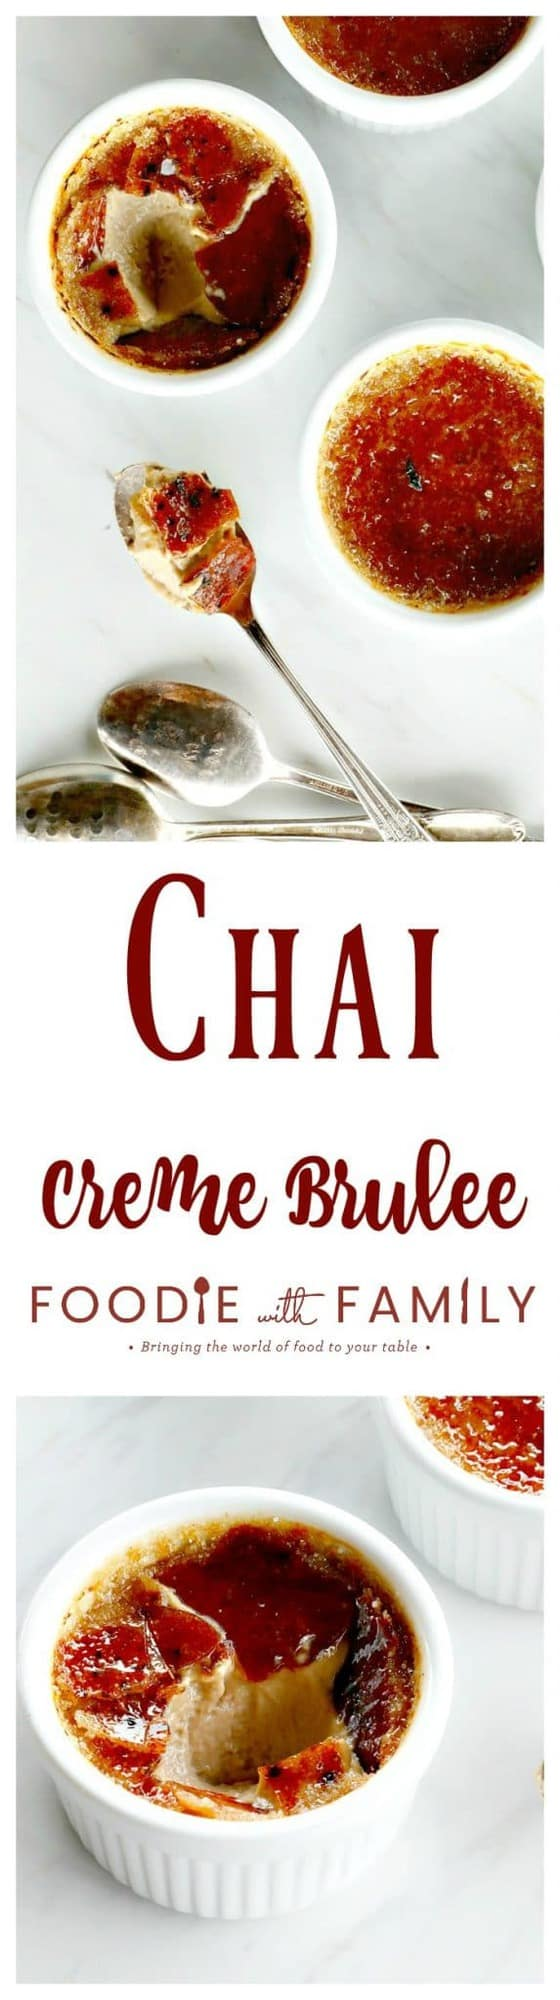 Chai Creme Brulee: the thin layer of crisp burnt-sugar caramel sits on top of a velvety and smooth custard redolent with cinnamon, nutmeg, cardamom, and other spices; it tastes just like a caramel chai latte.